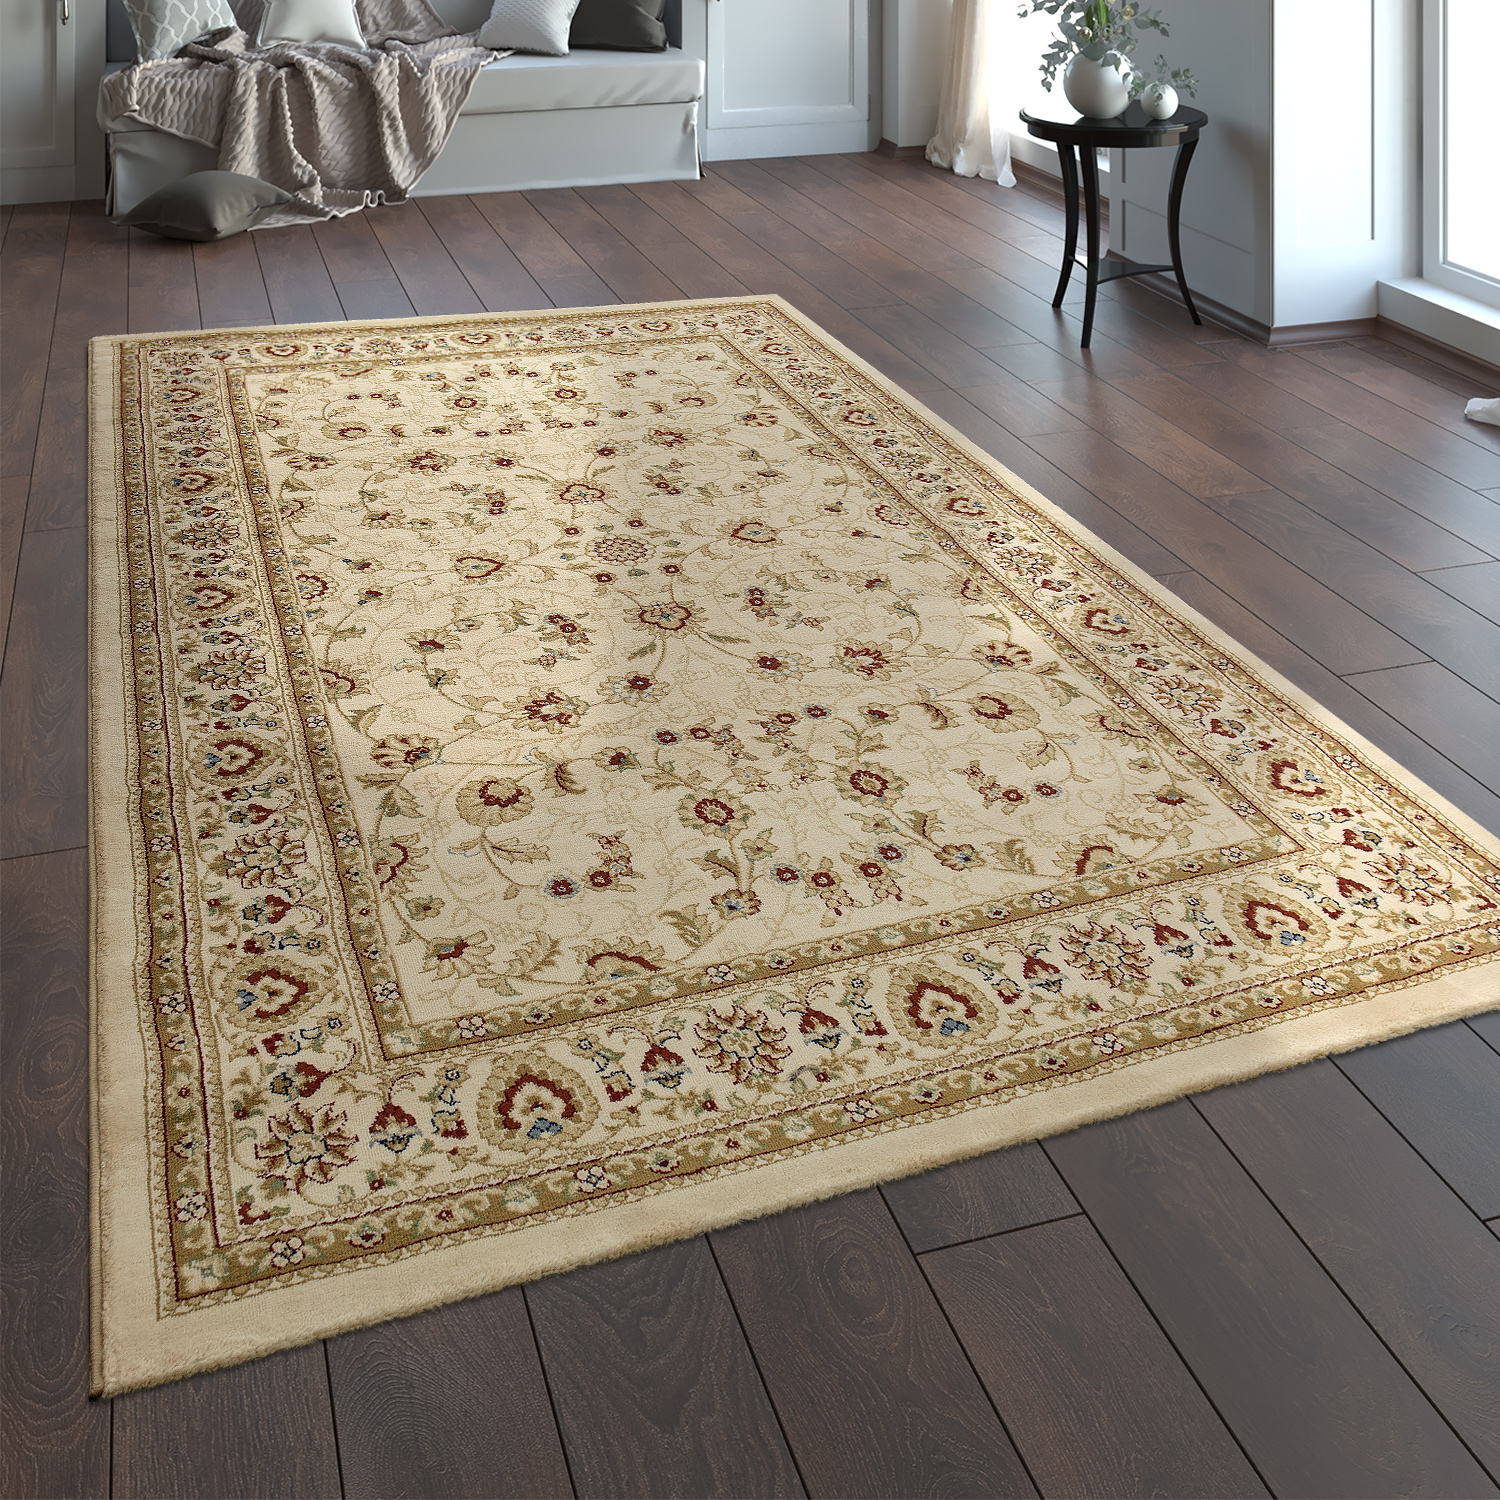 Oriental Rug Traditional Classic Look Persian Floral Cream Red